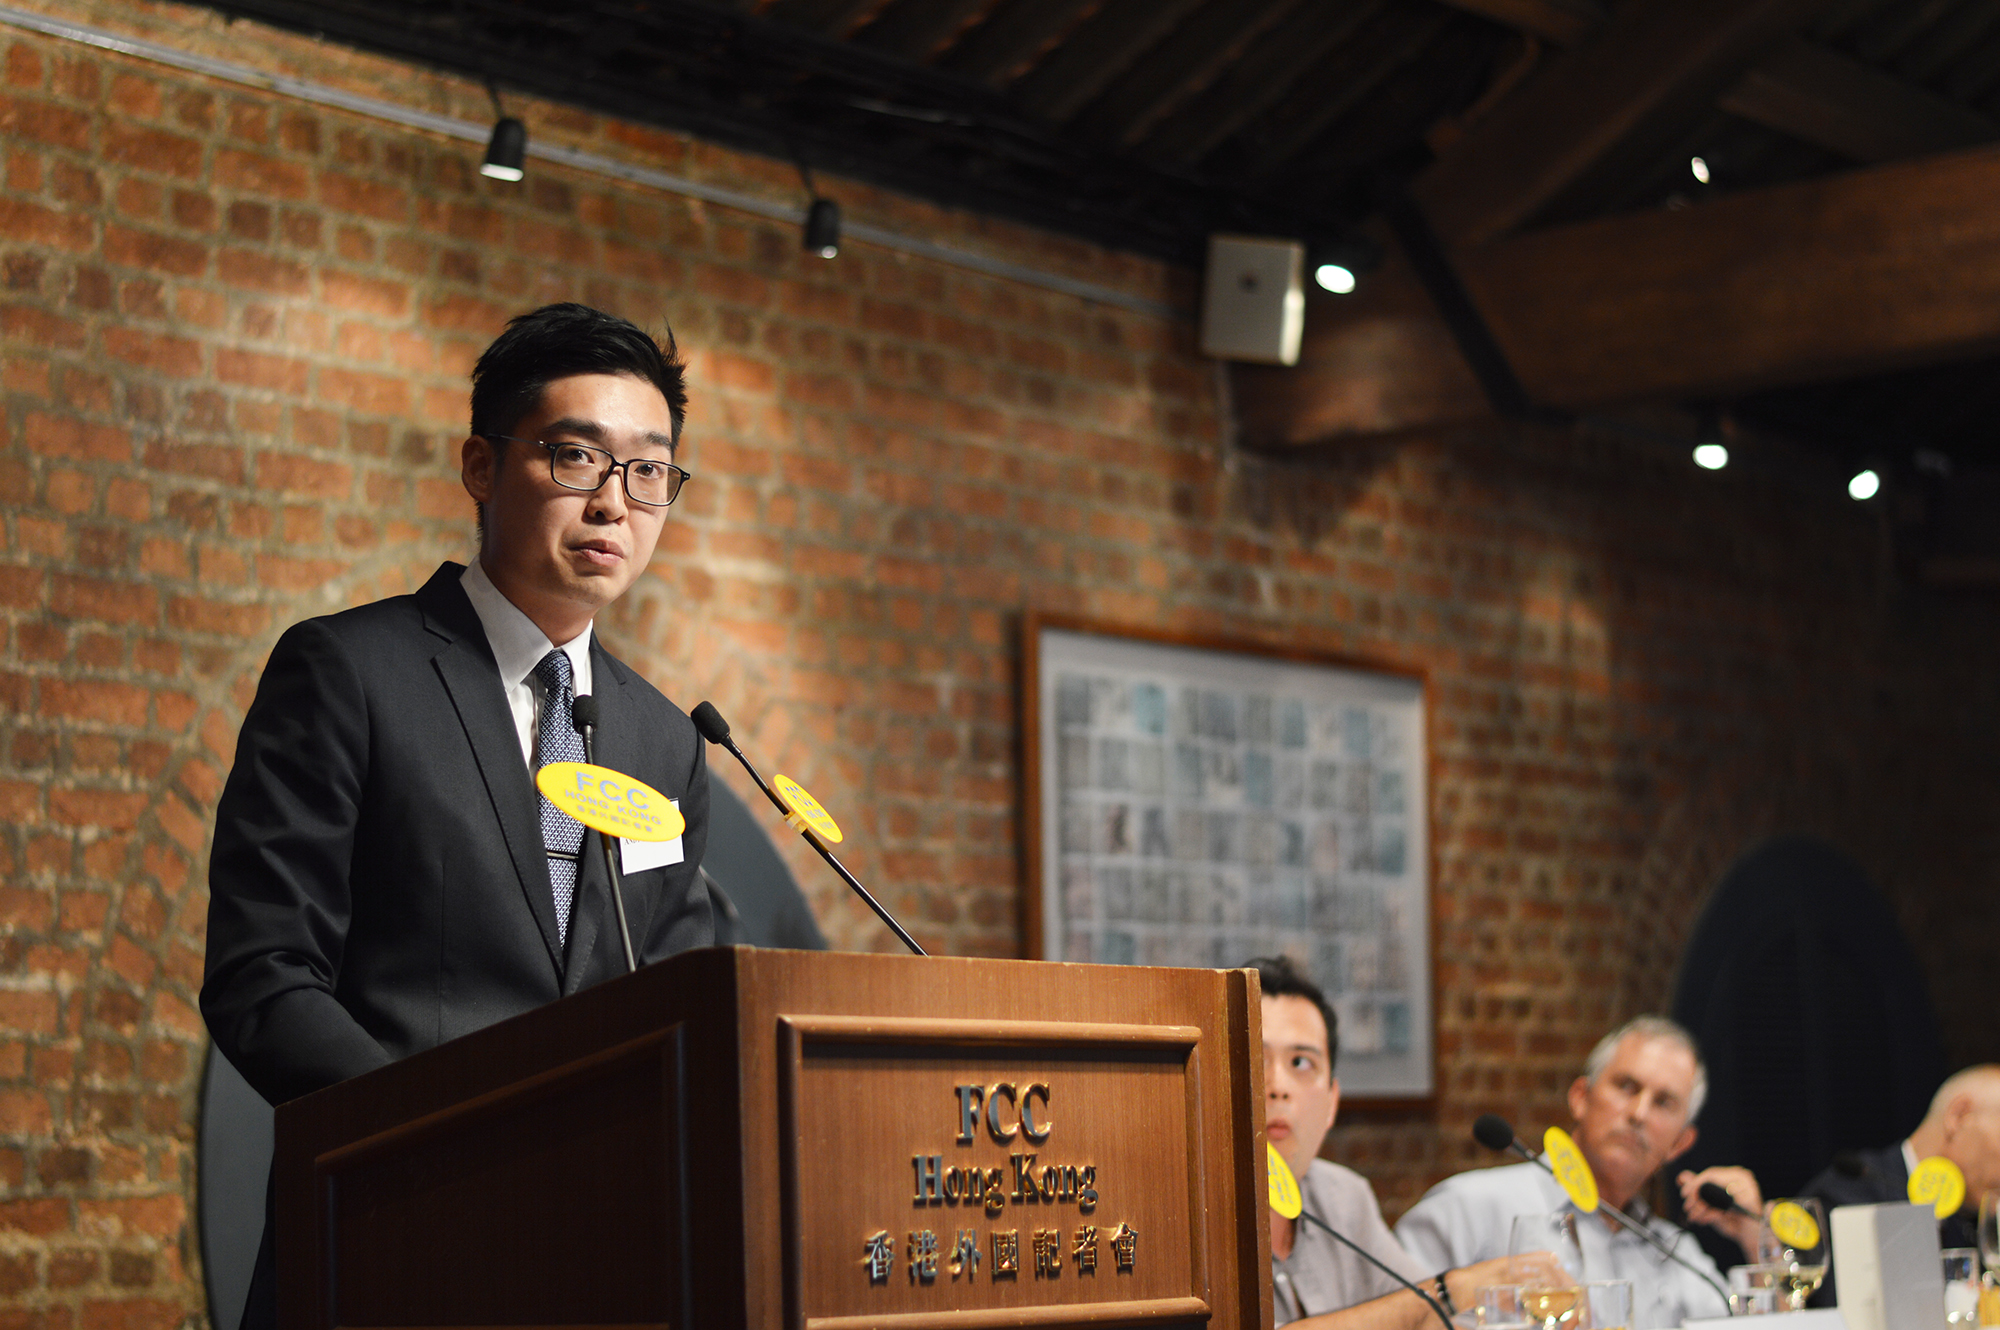 Andy Chan talked about hi party's push for independence for Hong Kong. Photo: Sarah Graham/FCC